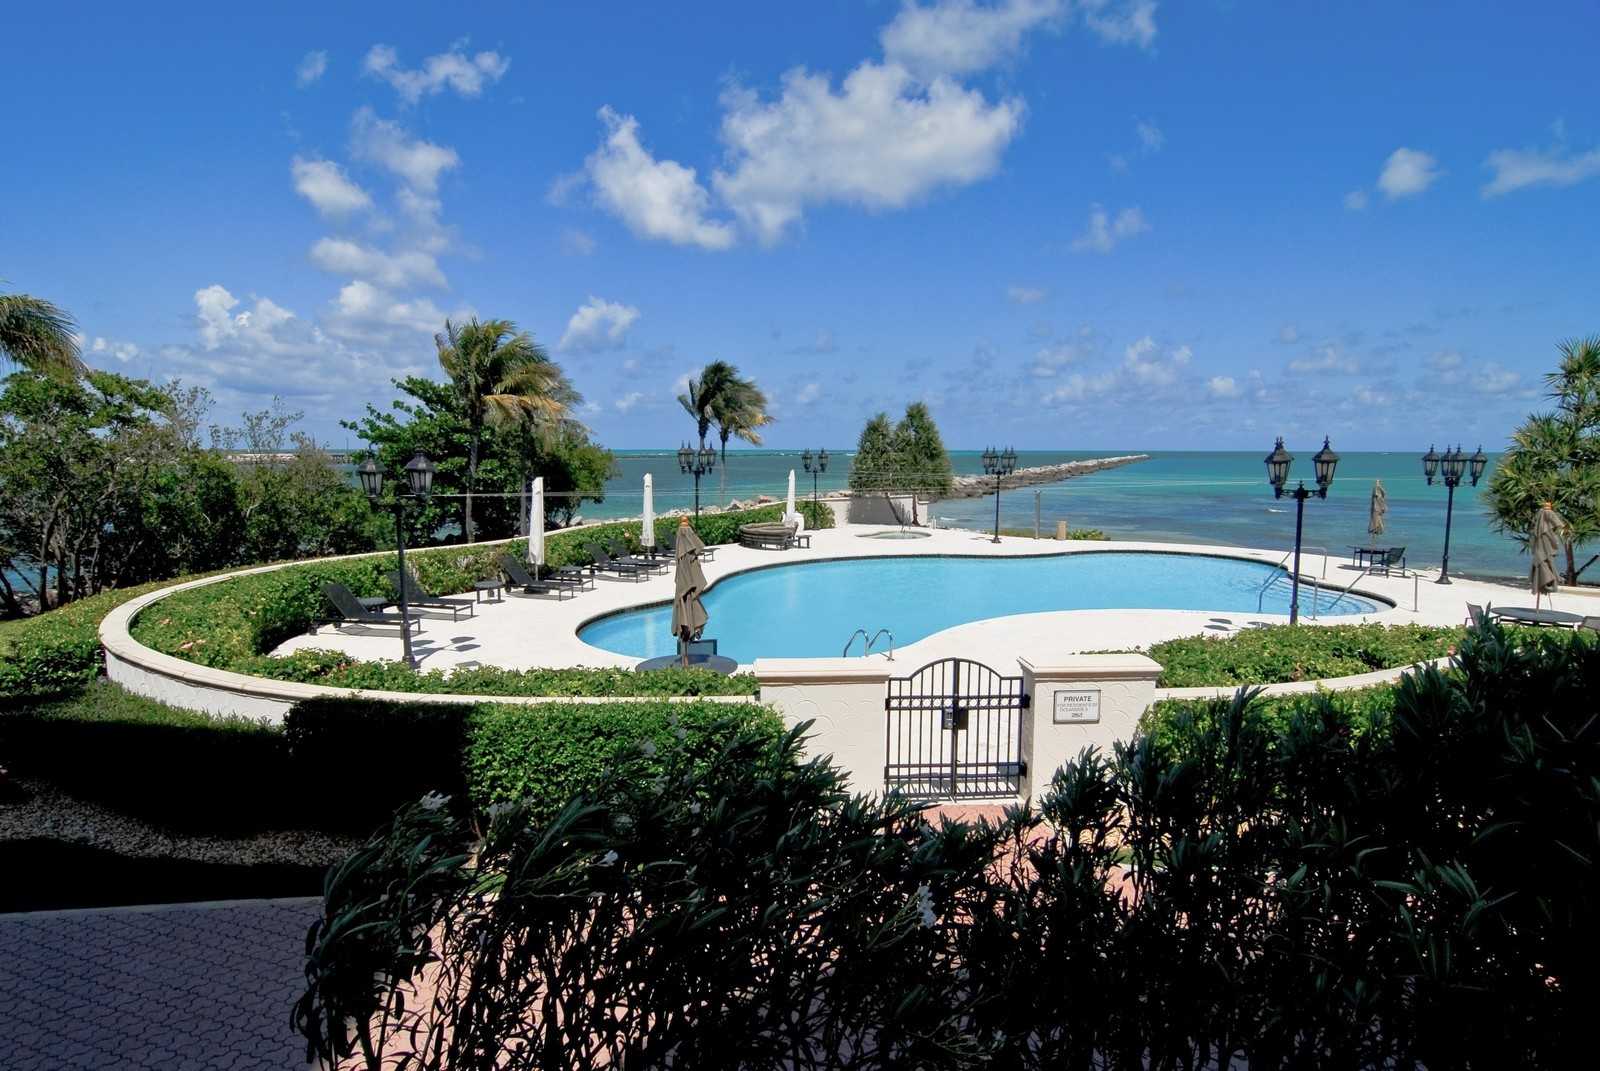 Real Estate Photography - 7281 Fisher Island Drive, Fisher Island, FL, 33109 - Pool